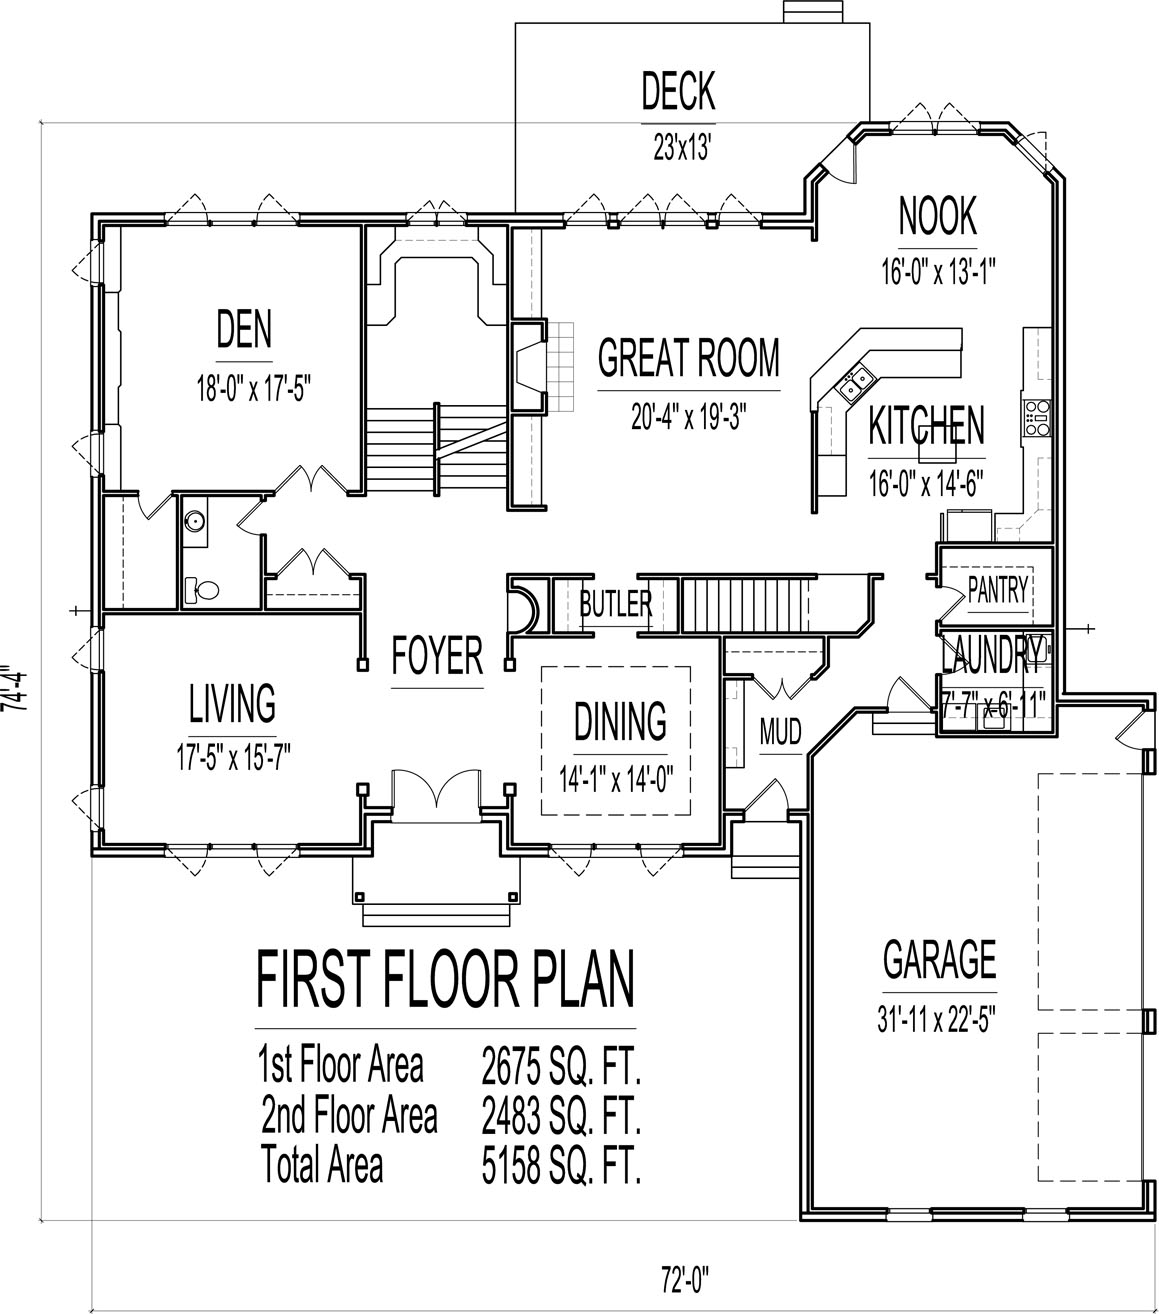 5000 sq ft house floor plans 5 bedroom 2 story designs for House plans 4000 to 5000 square feet